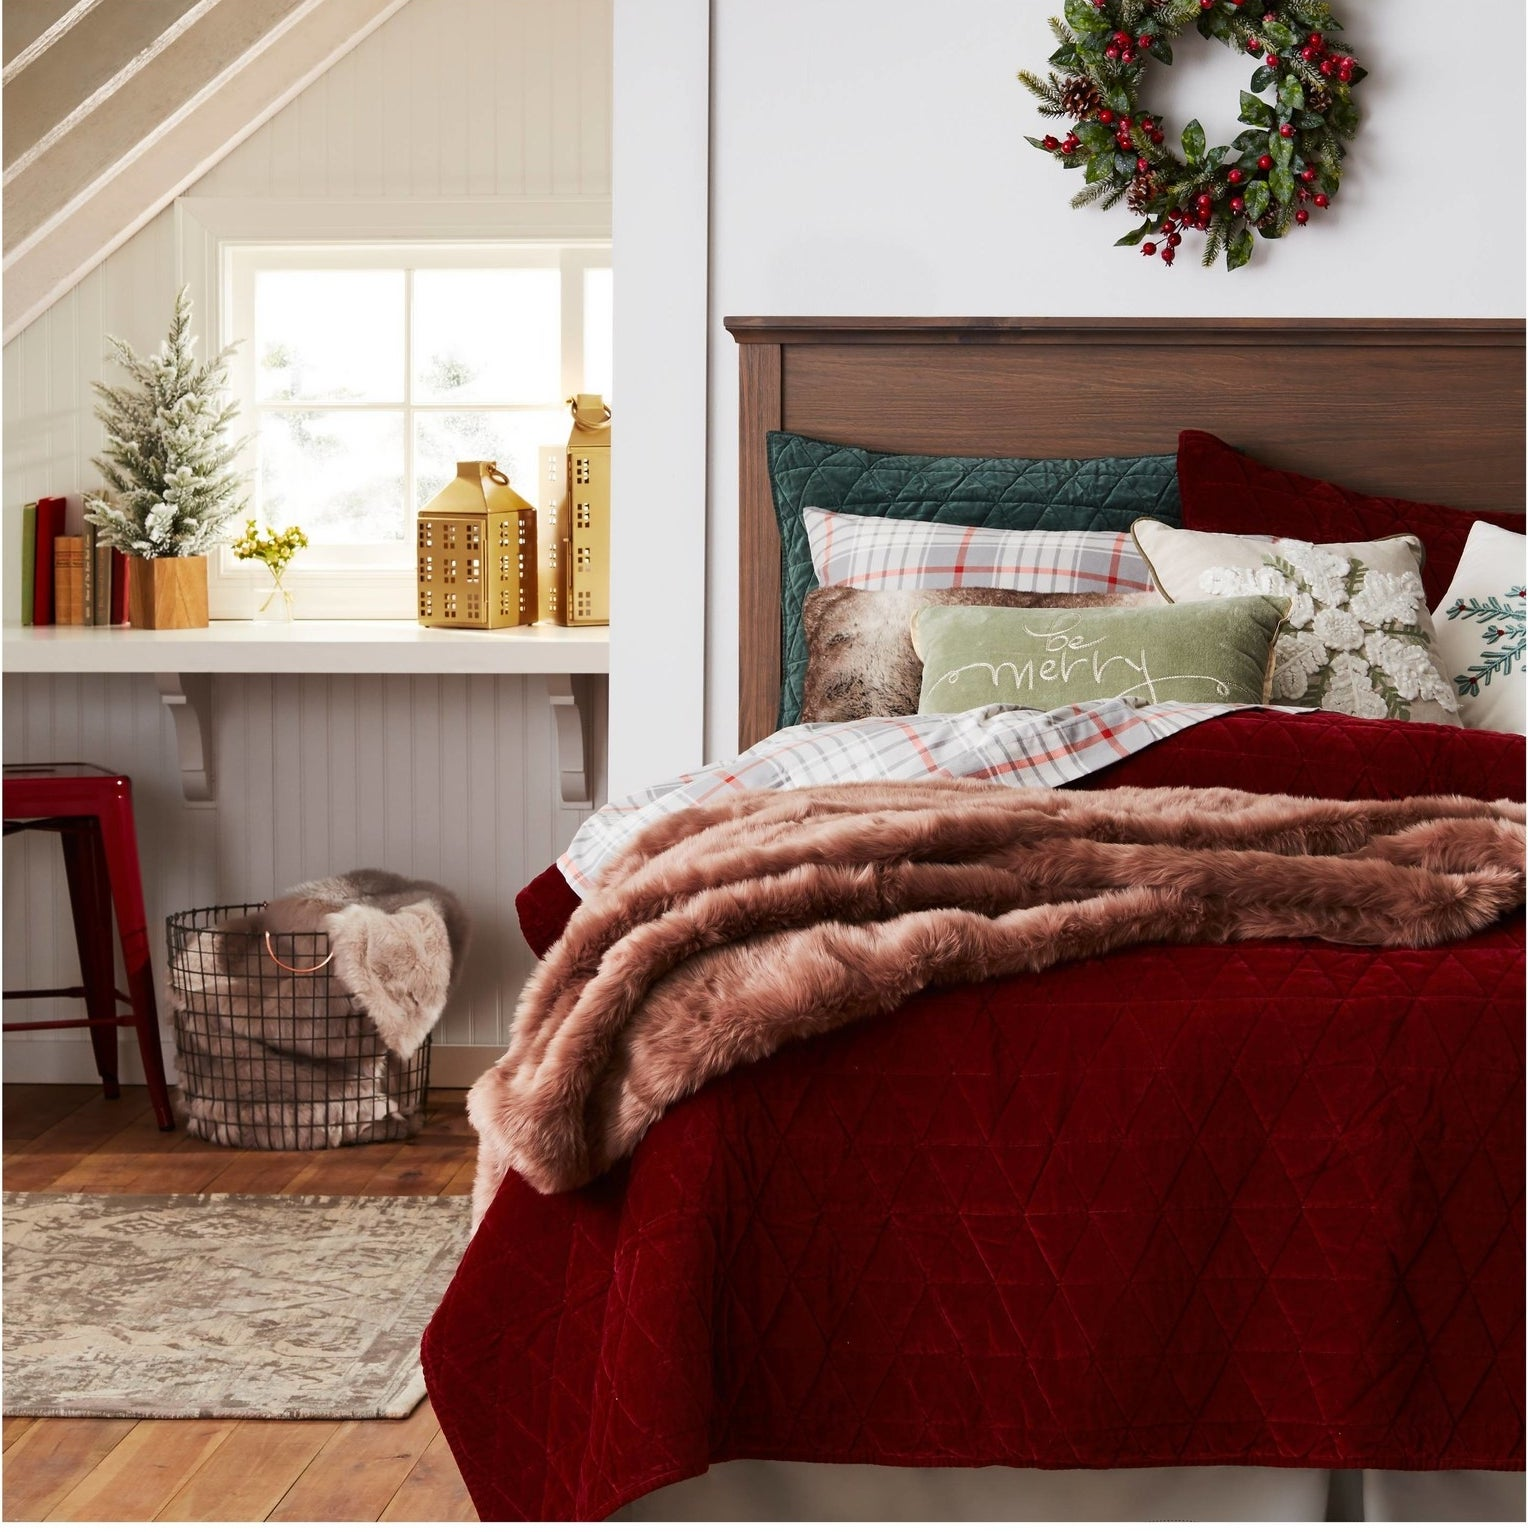 Christmas Ideas For A Shared Room: 29 Last-Minute Gifts From Target For Everyone On Your List